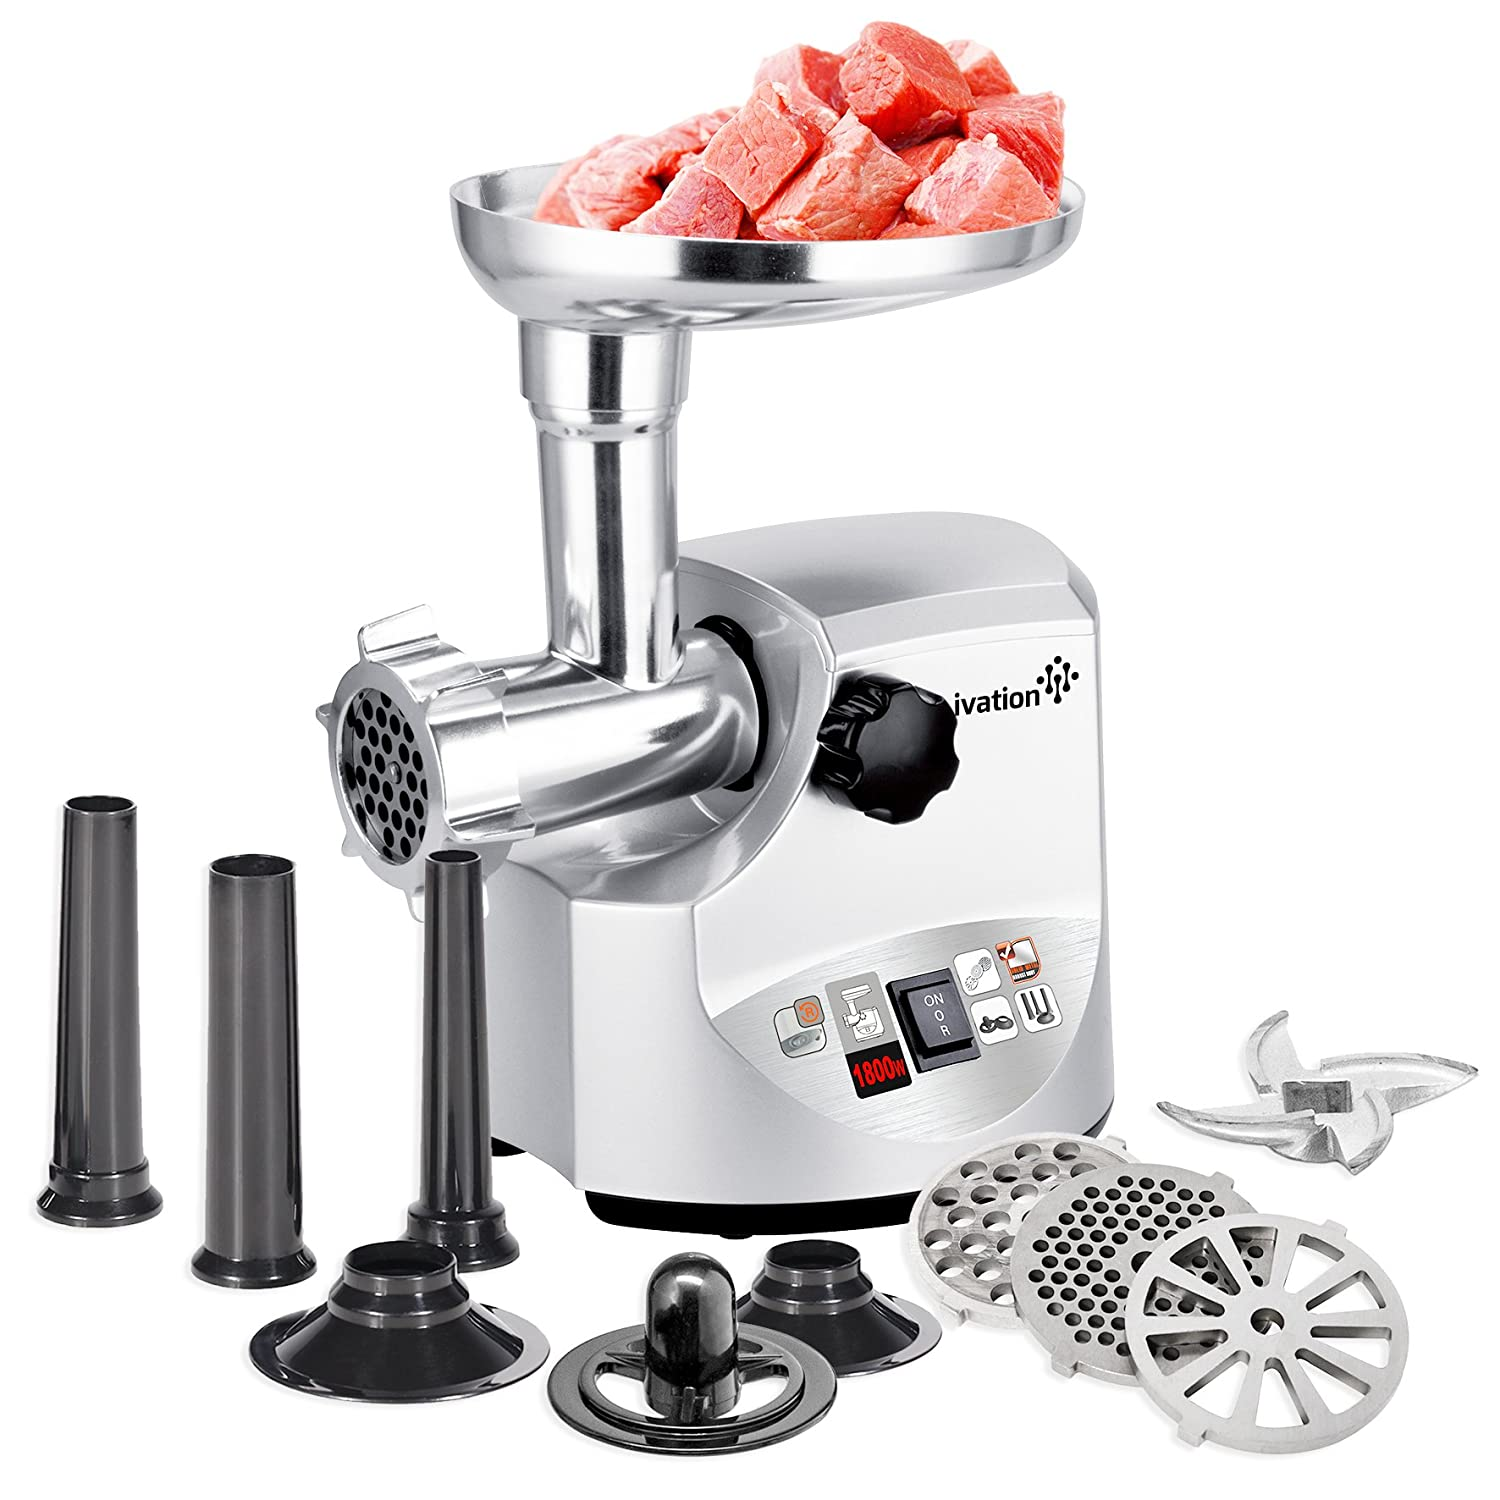 Ivation 2.5hp Electric Meat Grinder Mincer 1800 Watt, Sausage Stuffer - Heavy Duty - 3 Stainless Steel Cutting Blades, Sausage Stuffing Tubes & Kibbe Attachment - ETL Certified IV-EMG181S